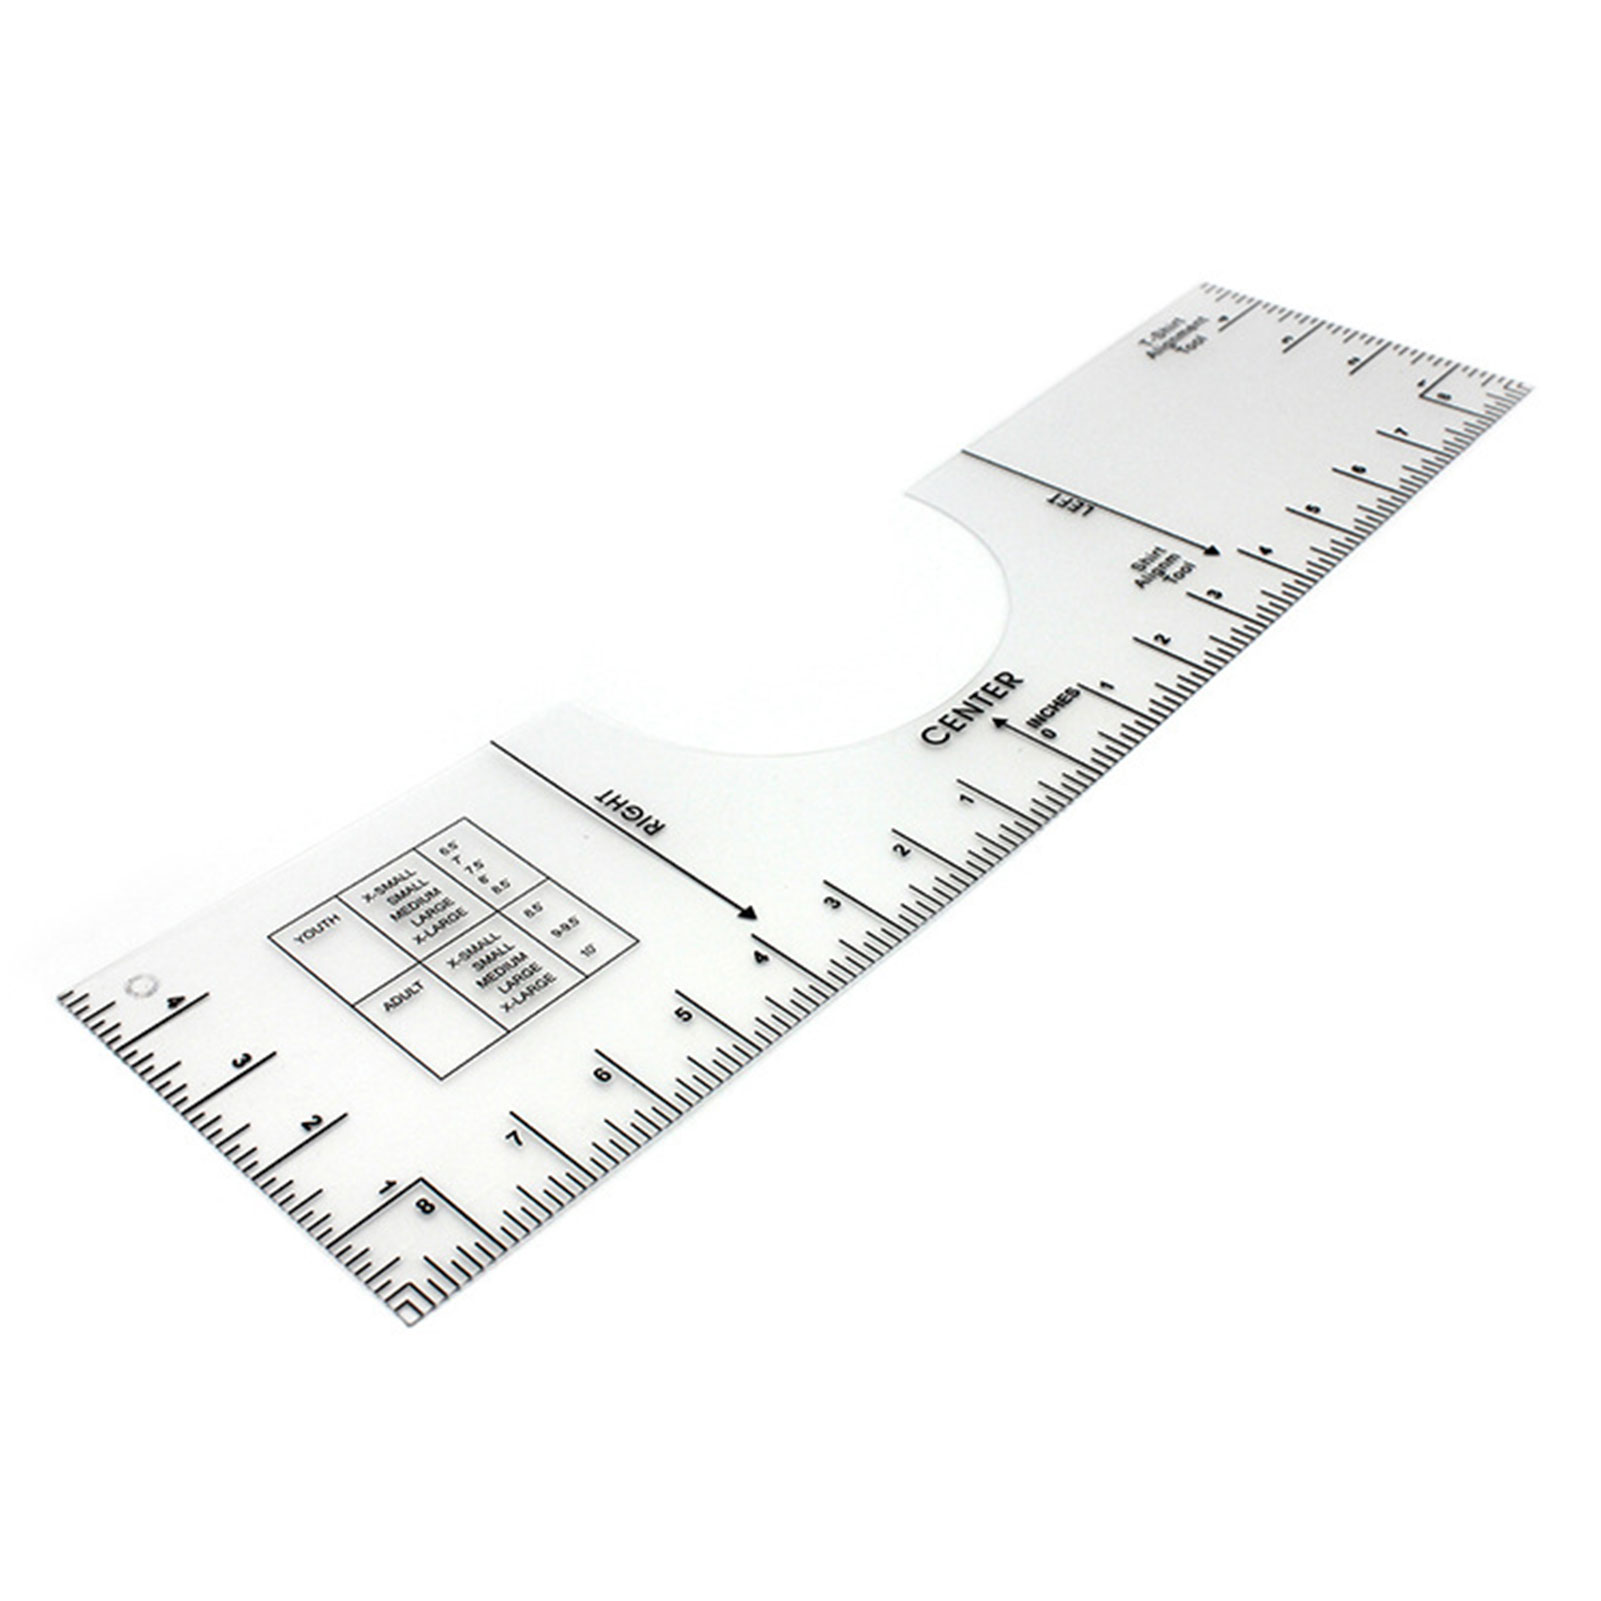 T-shirt Ruler,Round Neck Collar Center Alignment Help DIY Tailoring Design Transparent PVC Printed Scales T-shirt Tool Ruler for Your Heat Press Screen Printing Machine